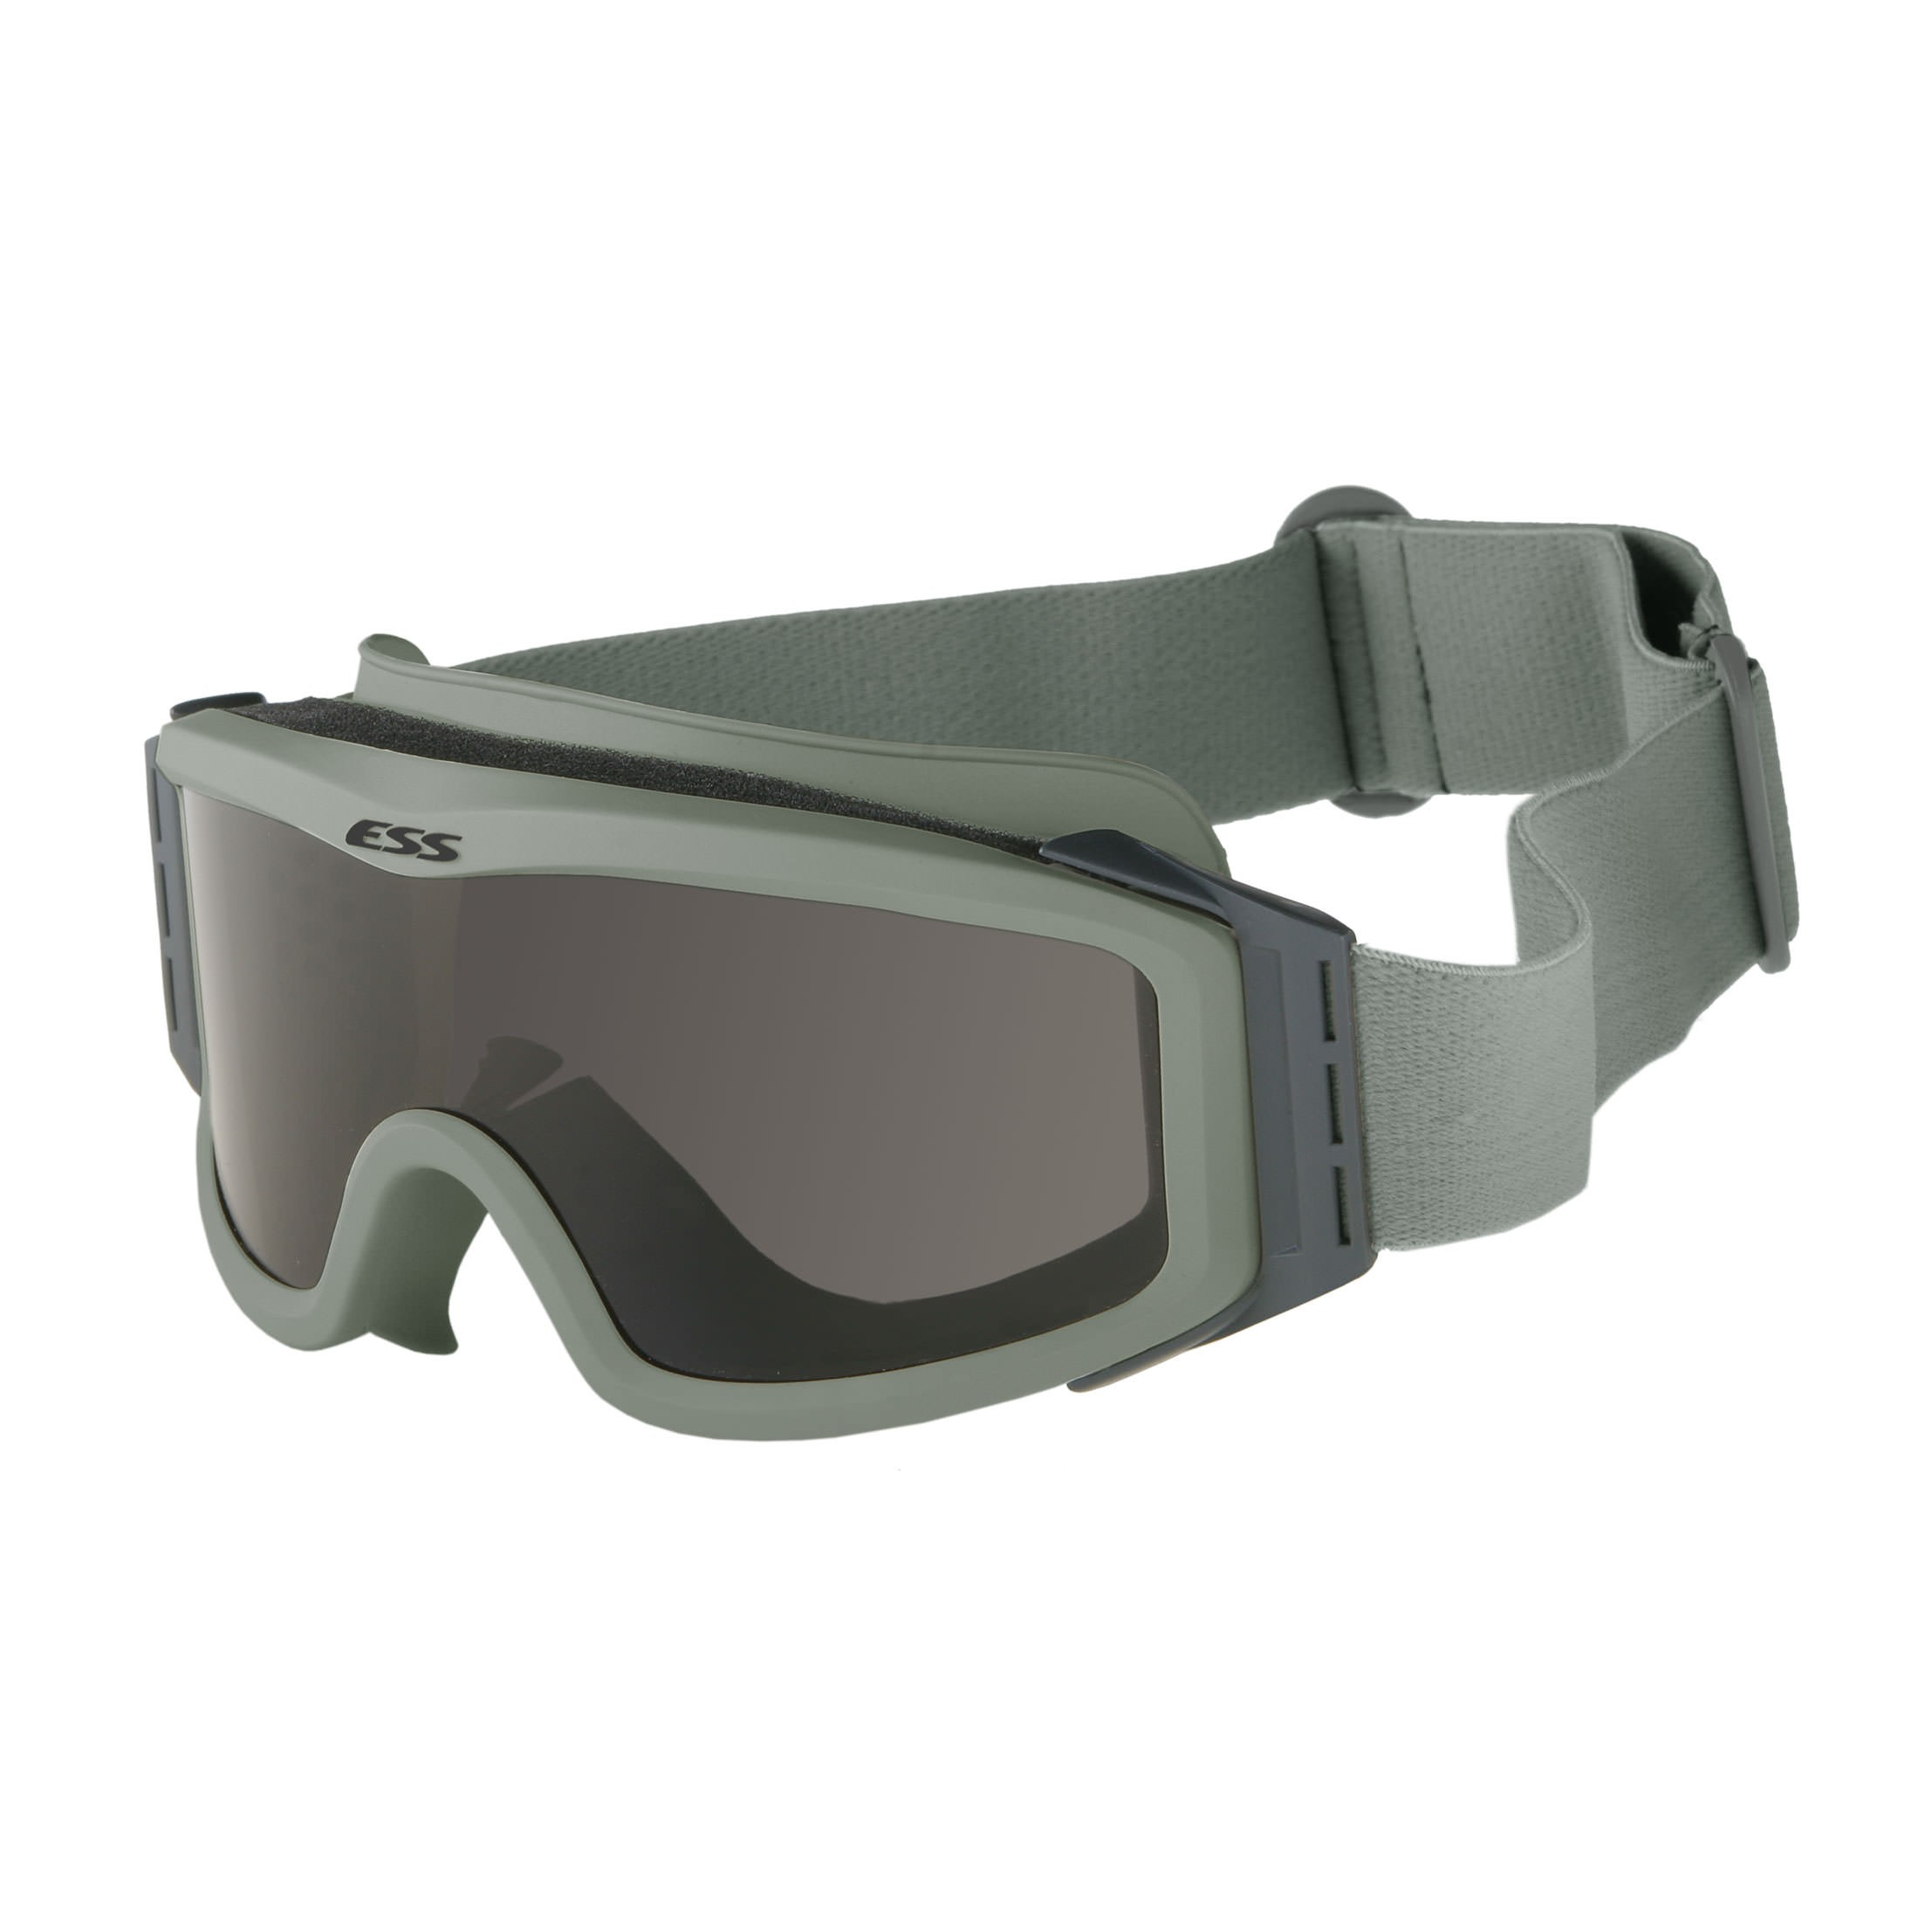 Profile NVG Goggle Foliage Green